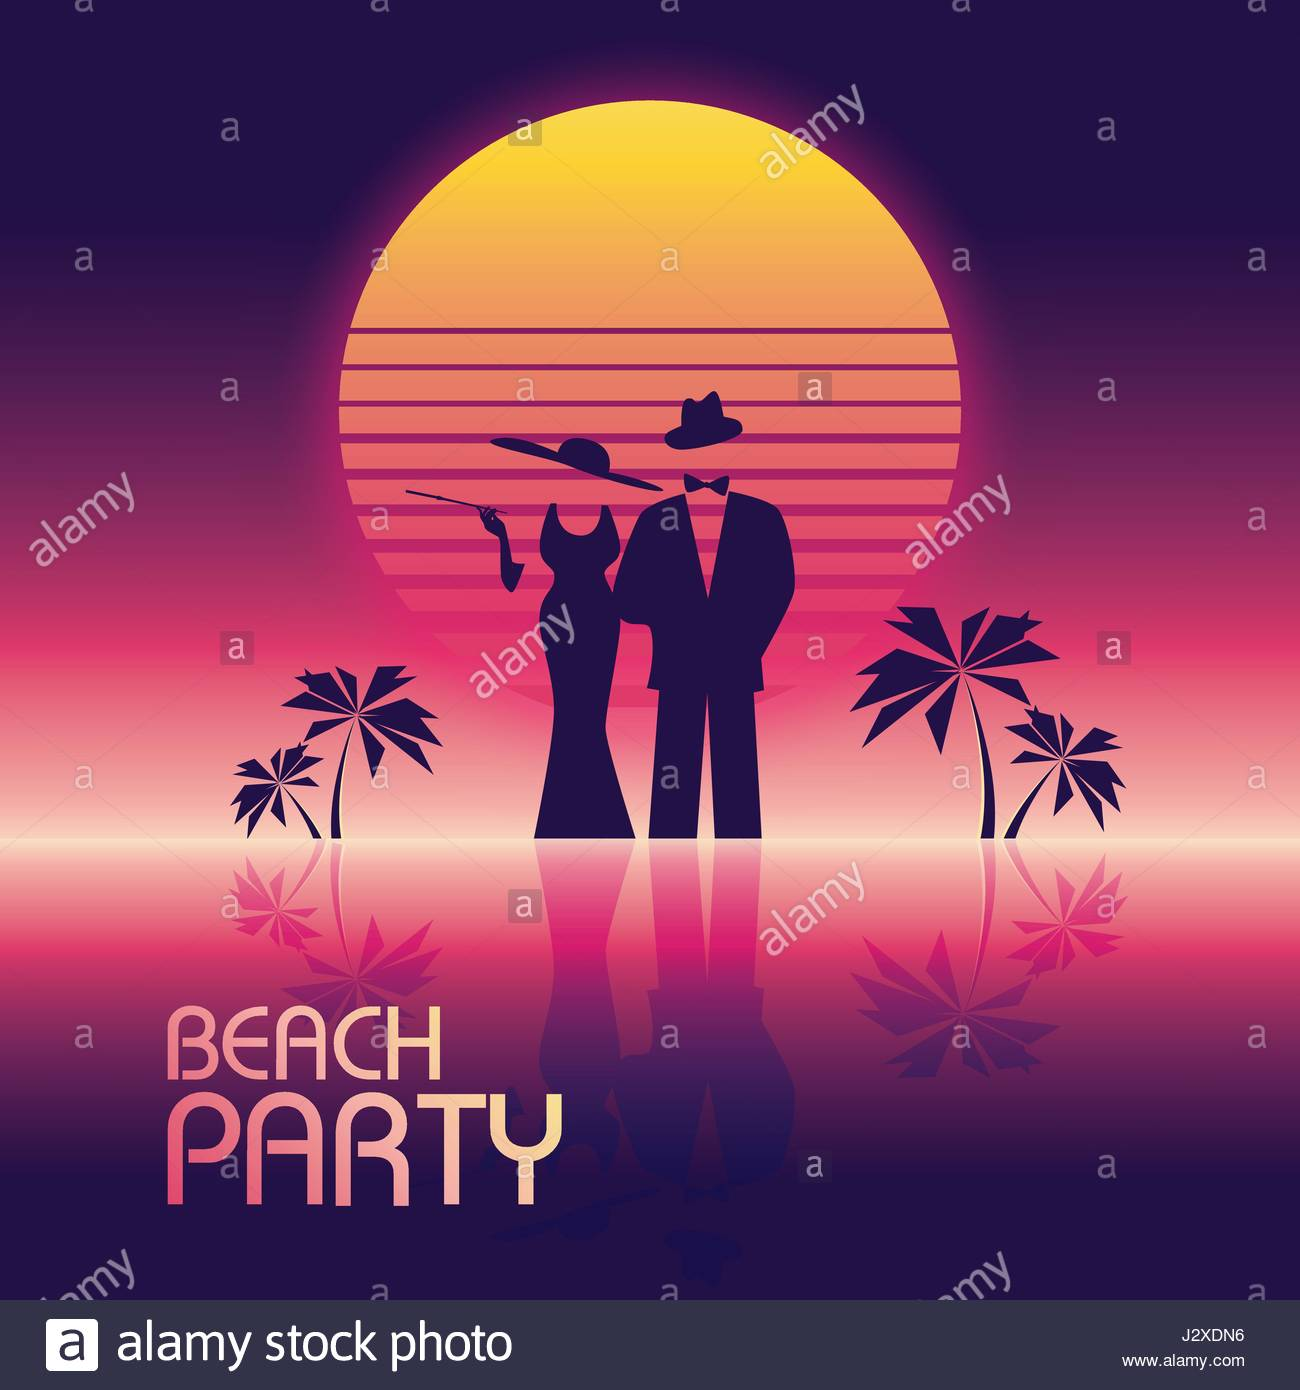 70s poster design template - Stock Vector Summer Beach Party Vector Banner Or Flyer Template 80s Retro Neon Glow Style Elegant Stylish Man In Suit Woman In Dress